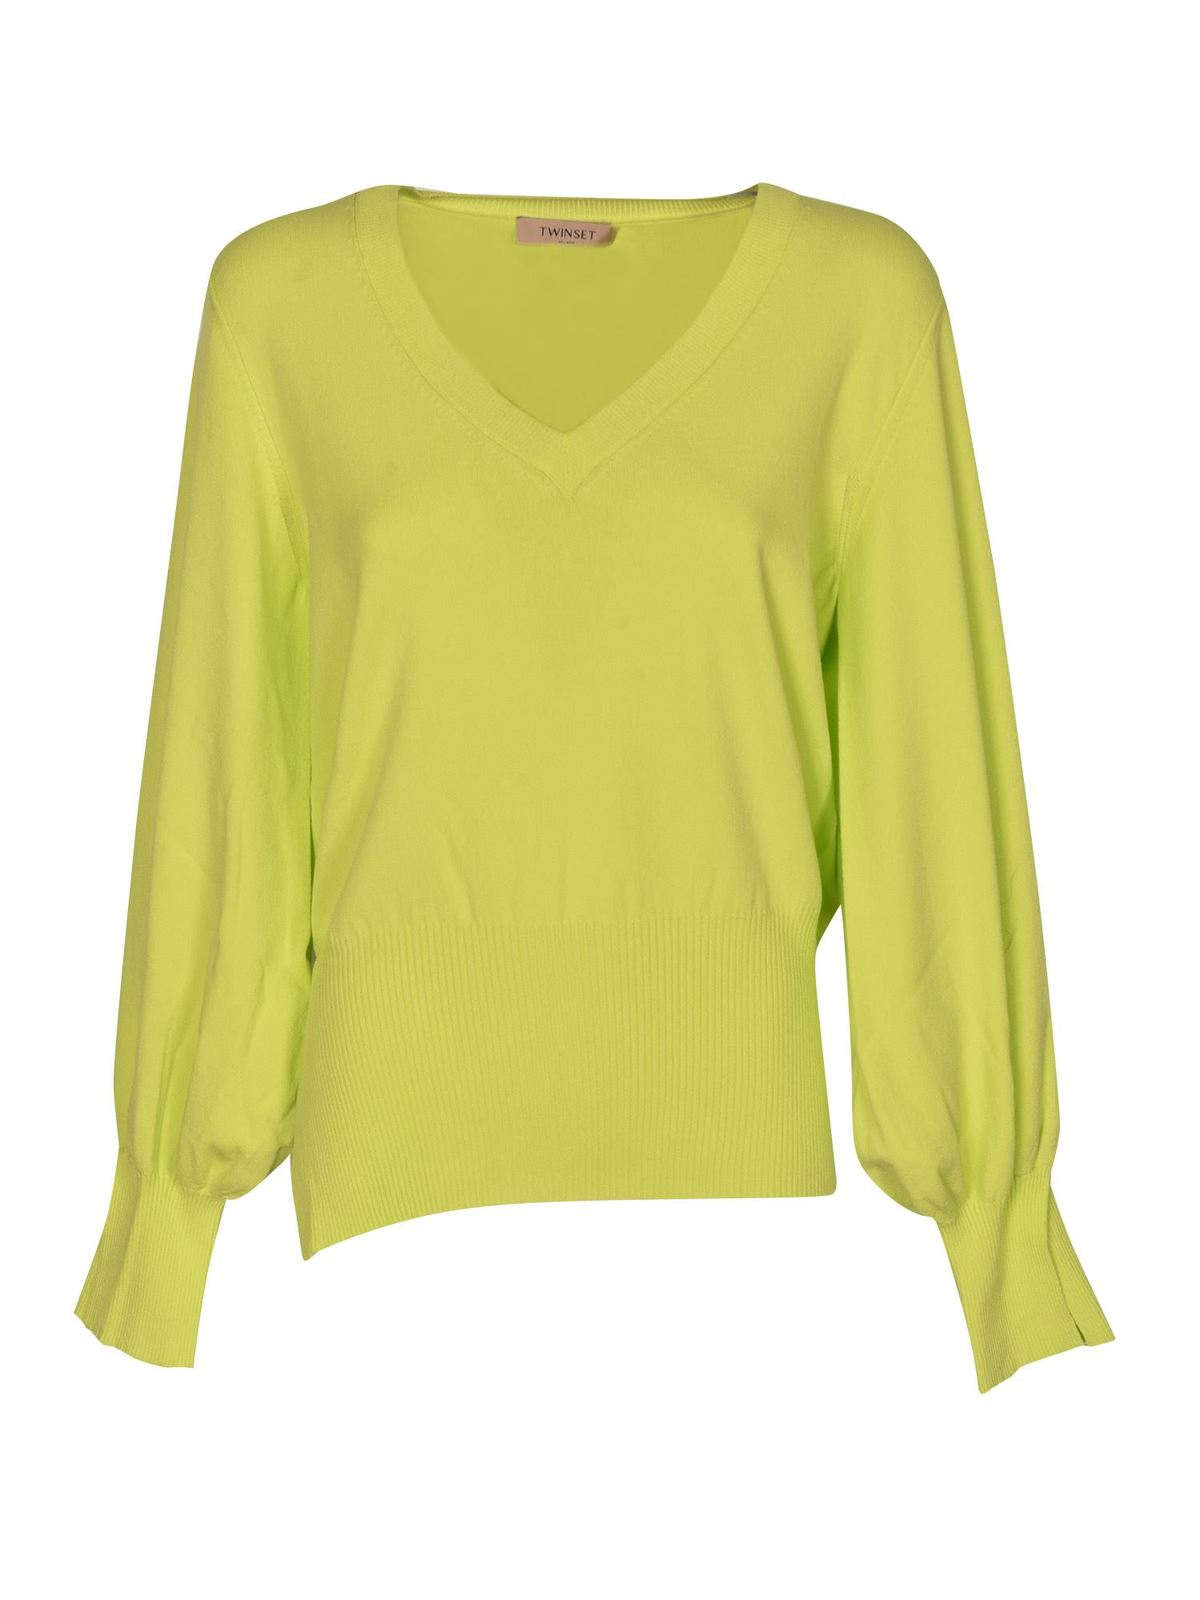 Twinset VENTS SWEATER IN GIALLO LED COLOR